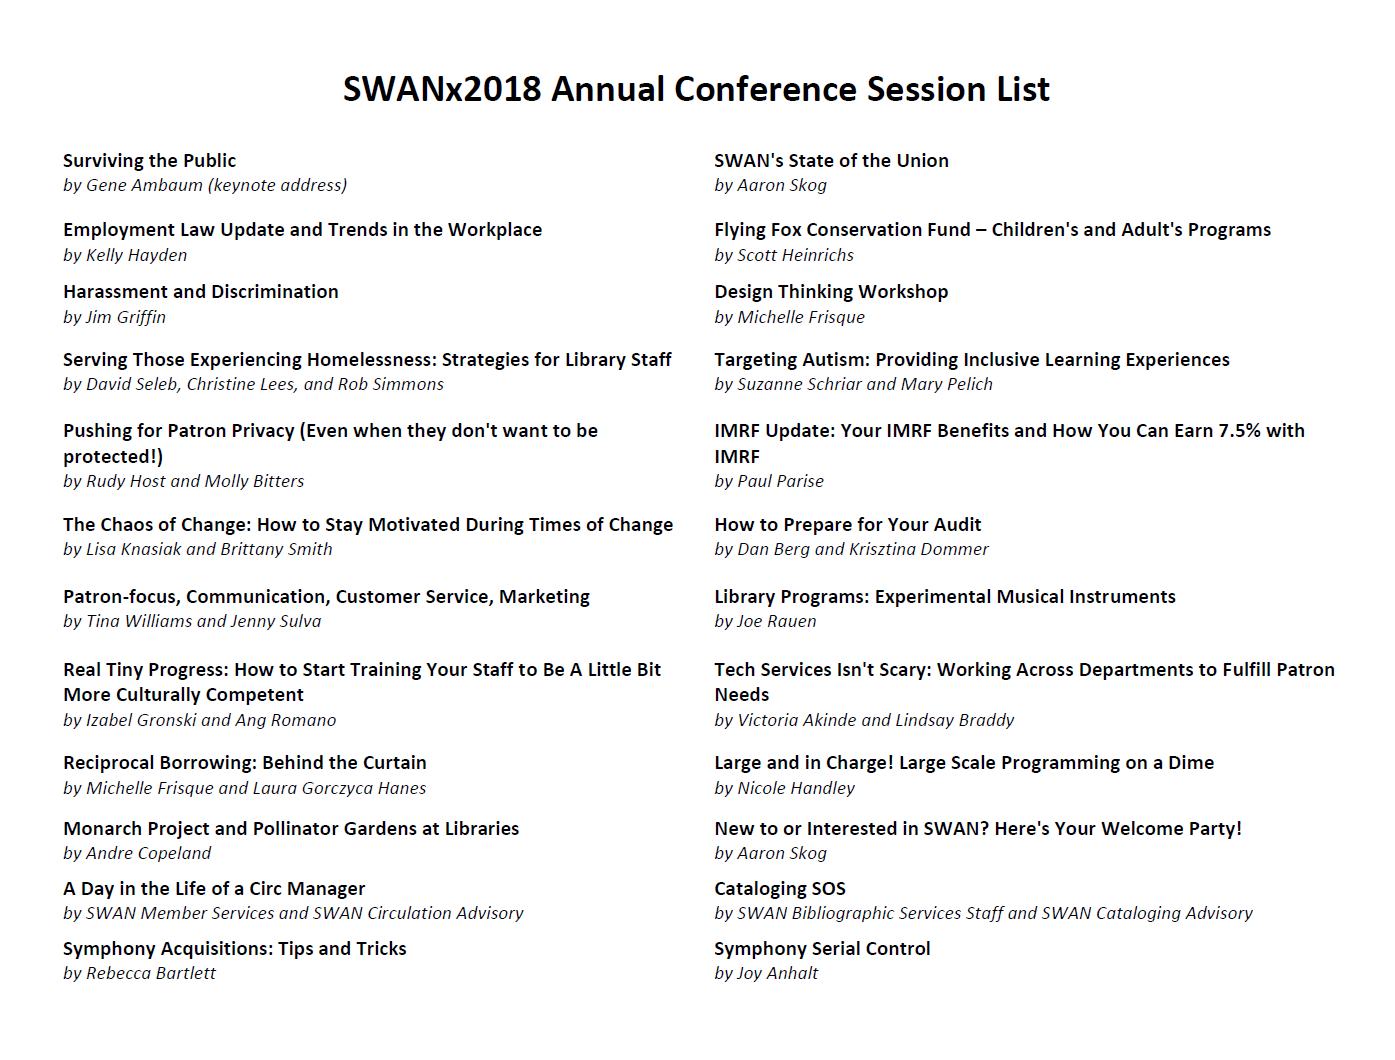 Full list of SWANx18 session titles